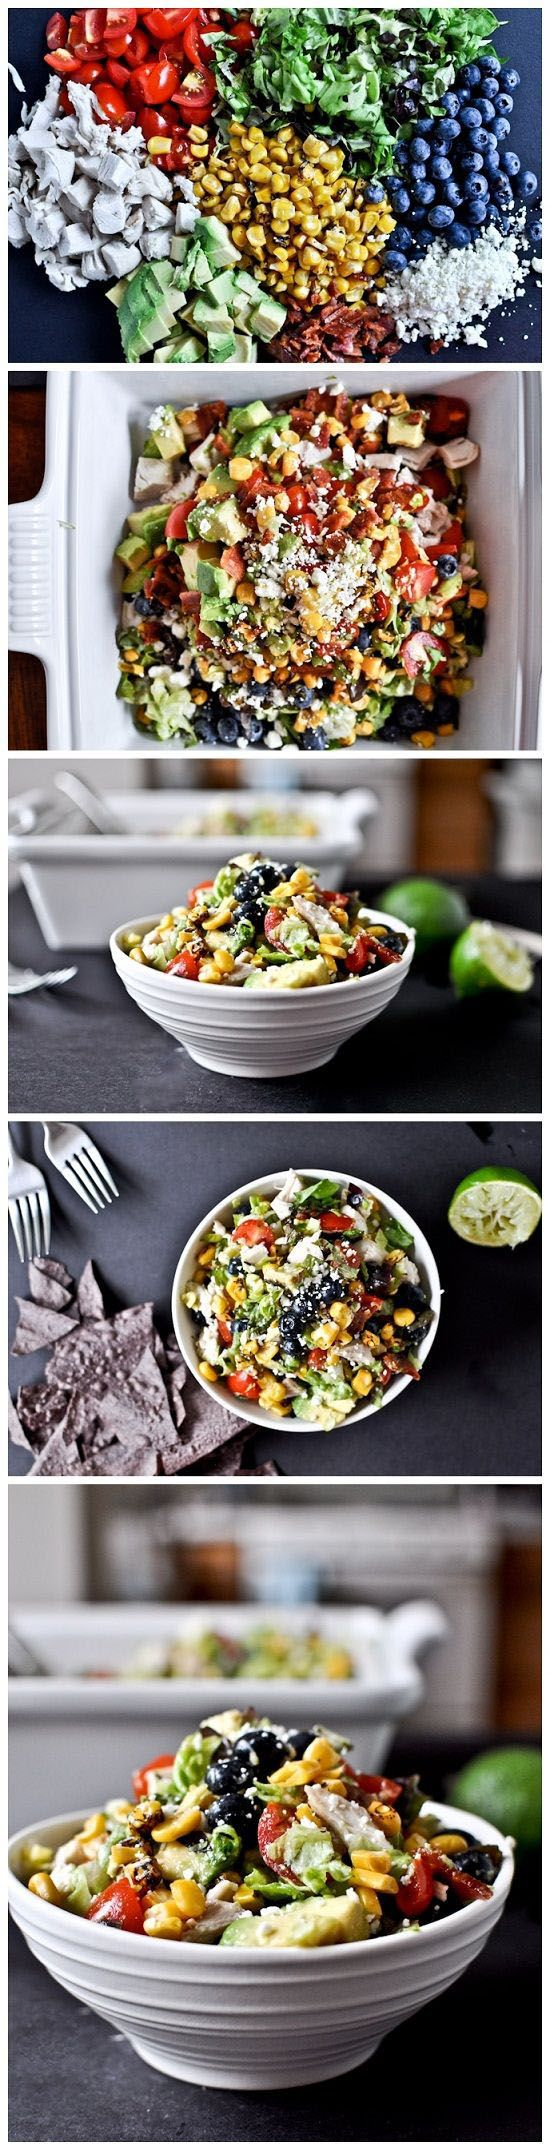 Summertime Chopped Salad